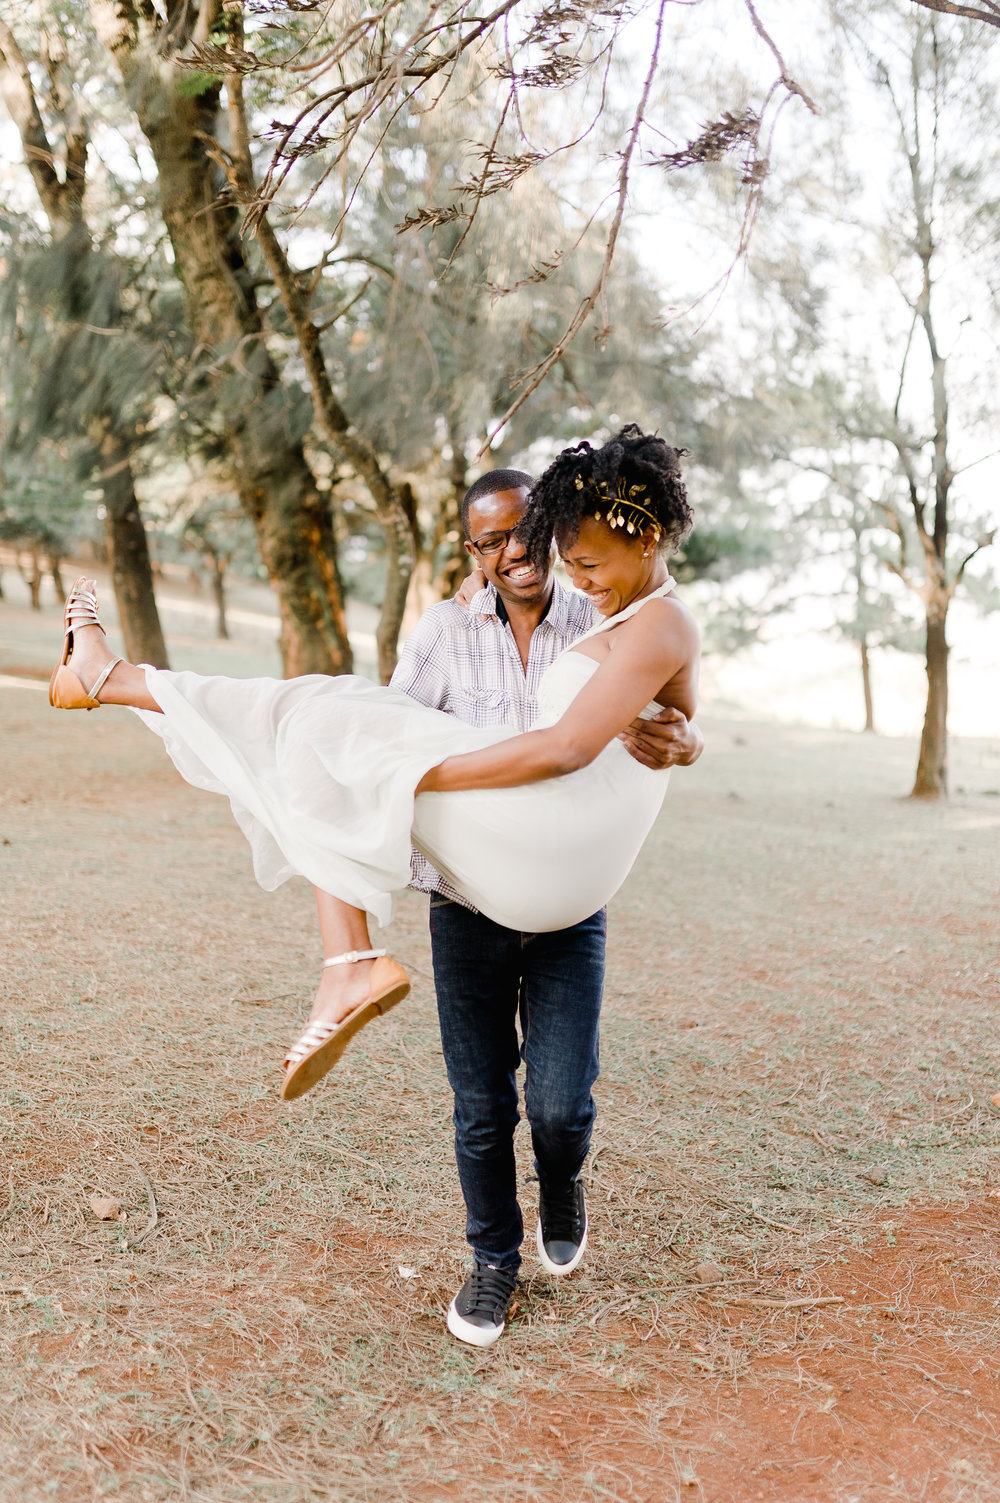 Anna-Hari-Photography-Kenyan-Wedding-Photographer-Ngong-Hills-Elopement-Kenya-14.jpg